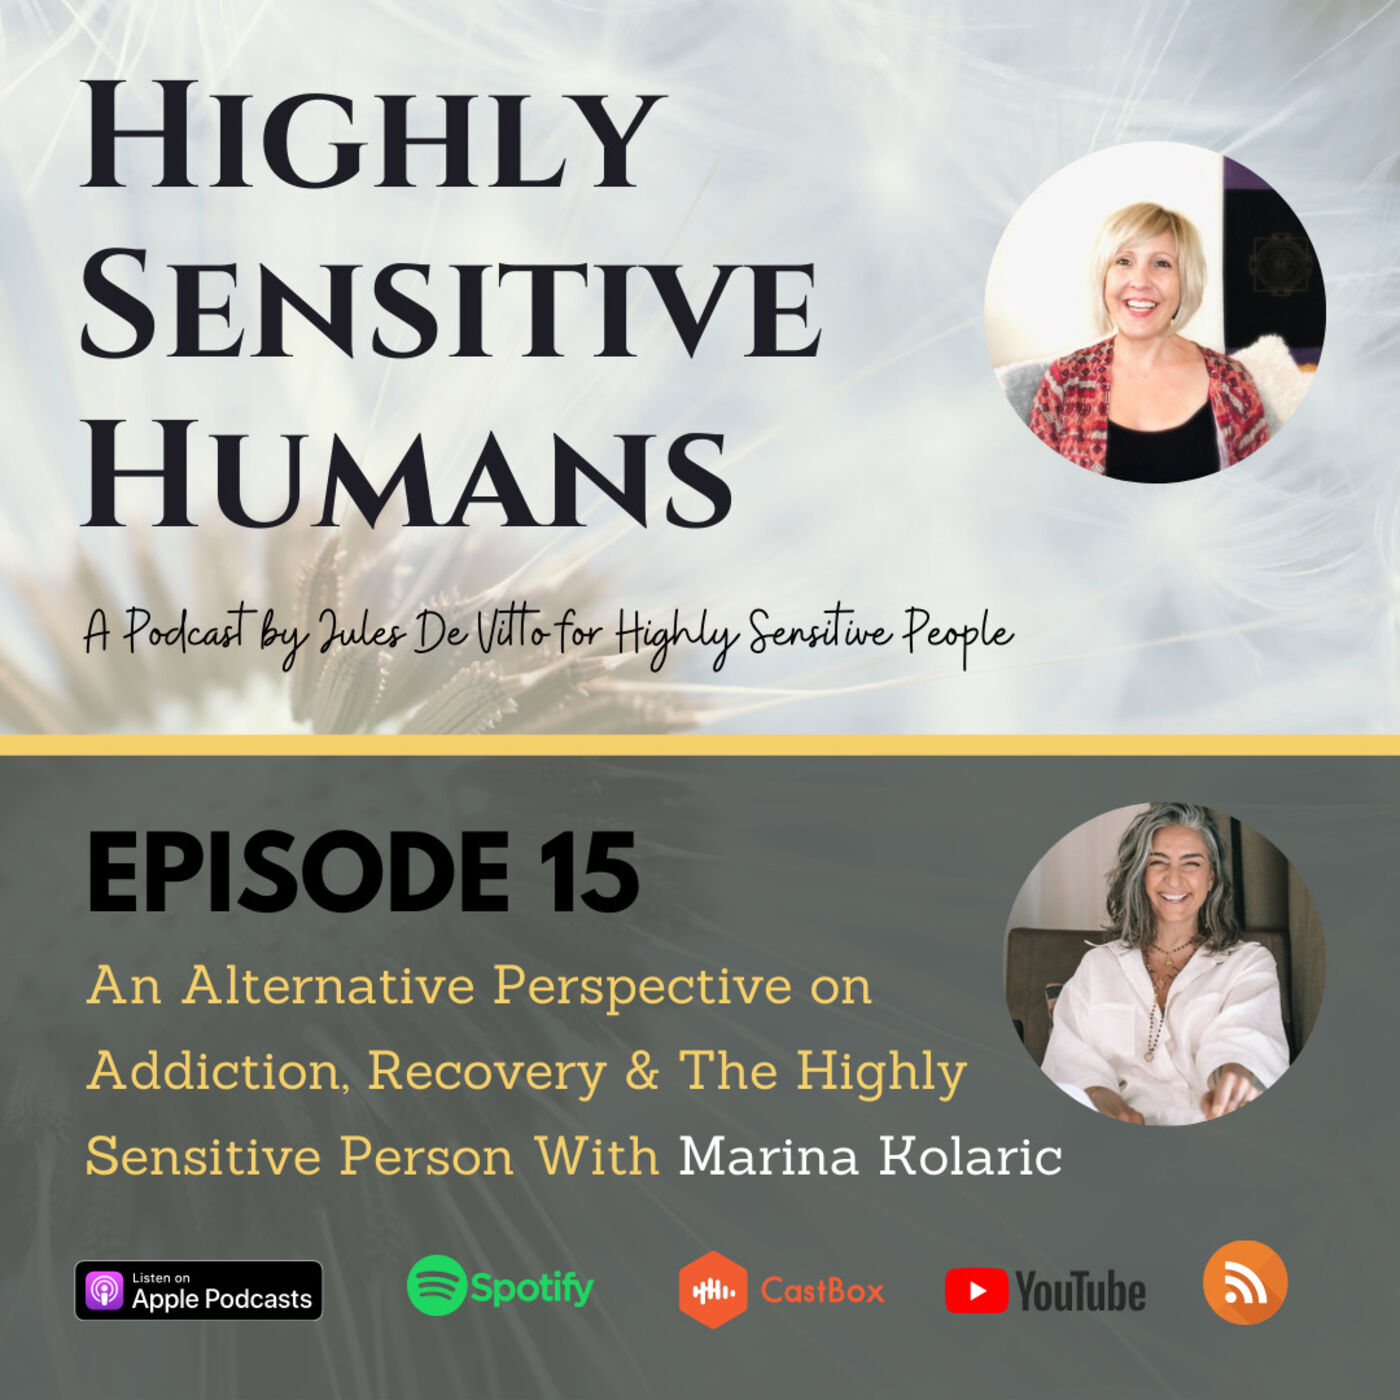 An Alternative Perspective on Addiction, Recovery & The Highly Sensitive Person